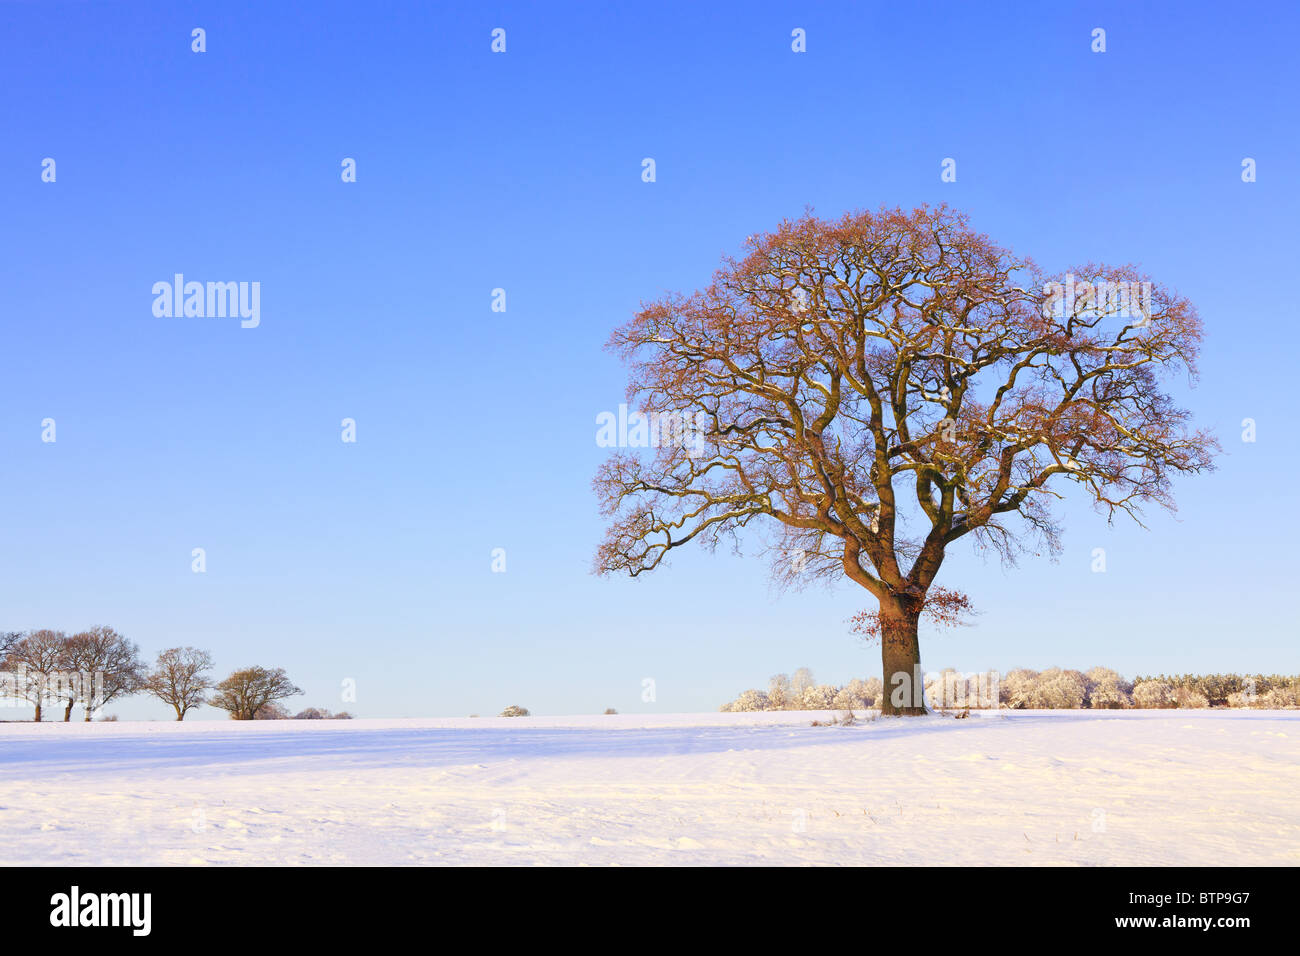 Landscape photo of a single oak tree in a snow covered field as the sun sets on a cold winter afternoon. - Stock Image